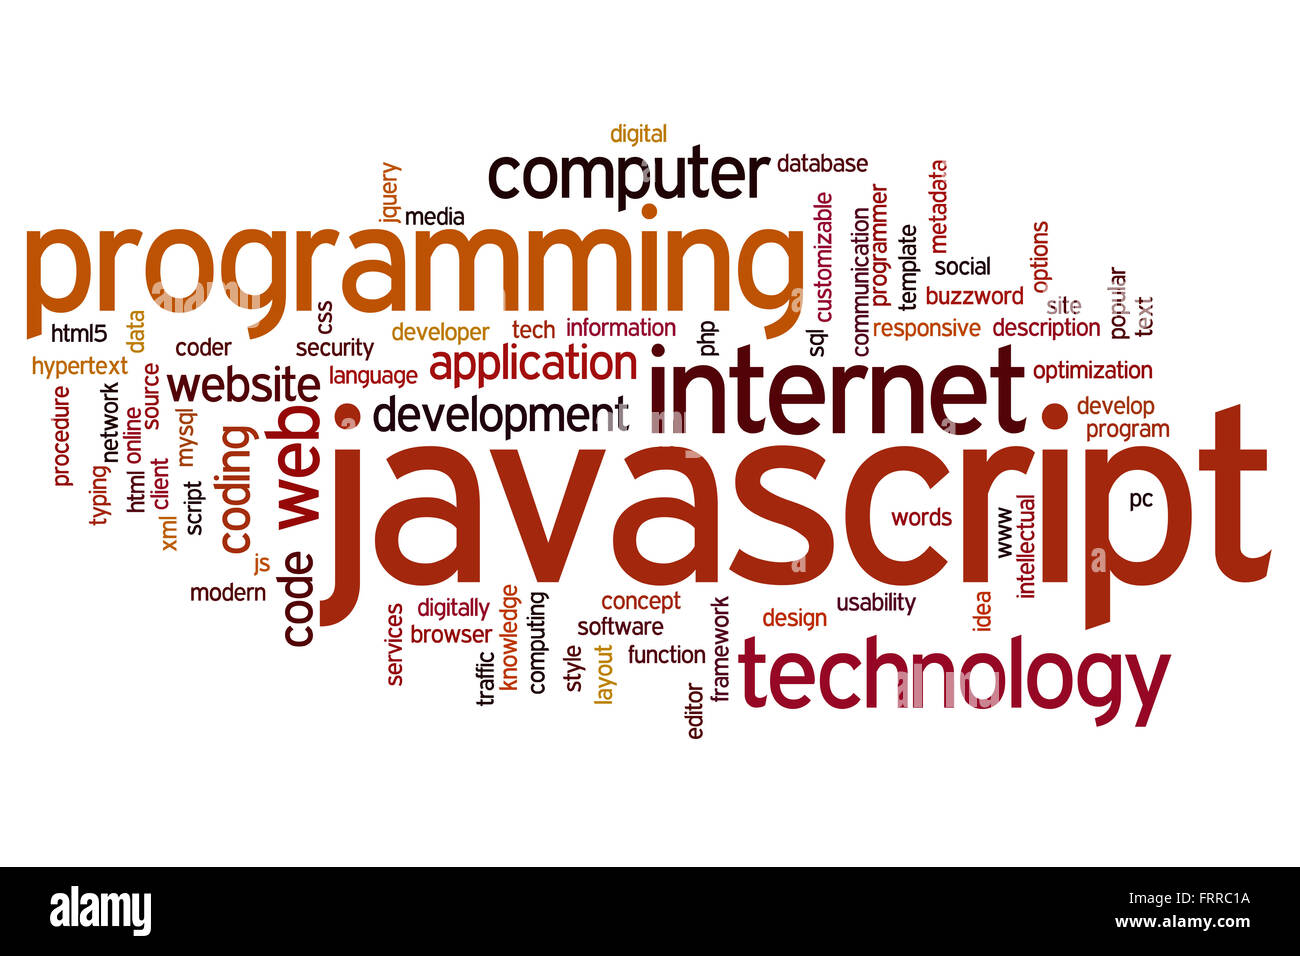 Javascript Cloud Javascript Concept Word Cloud Background Stock Photo 100703270